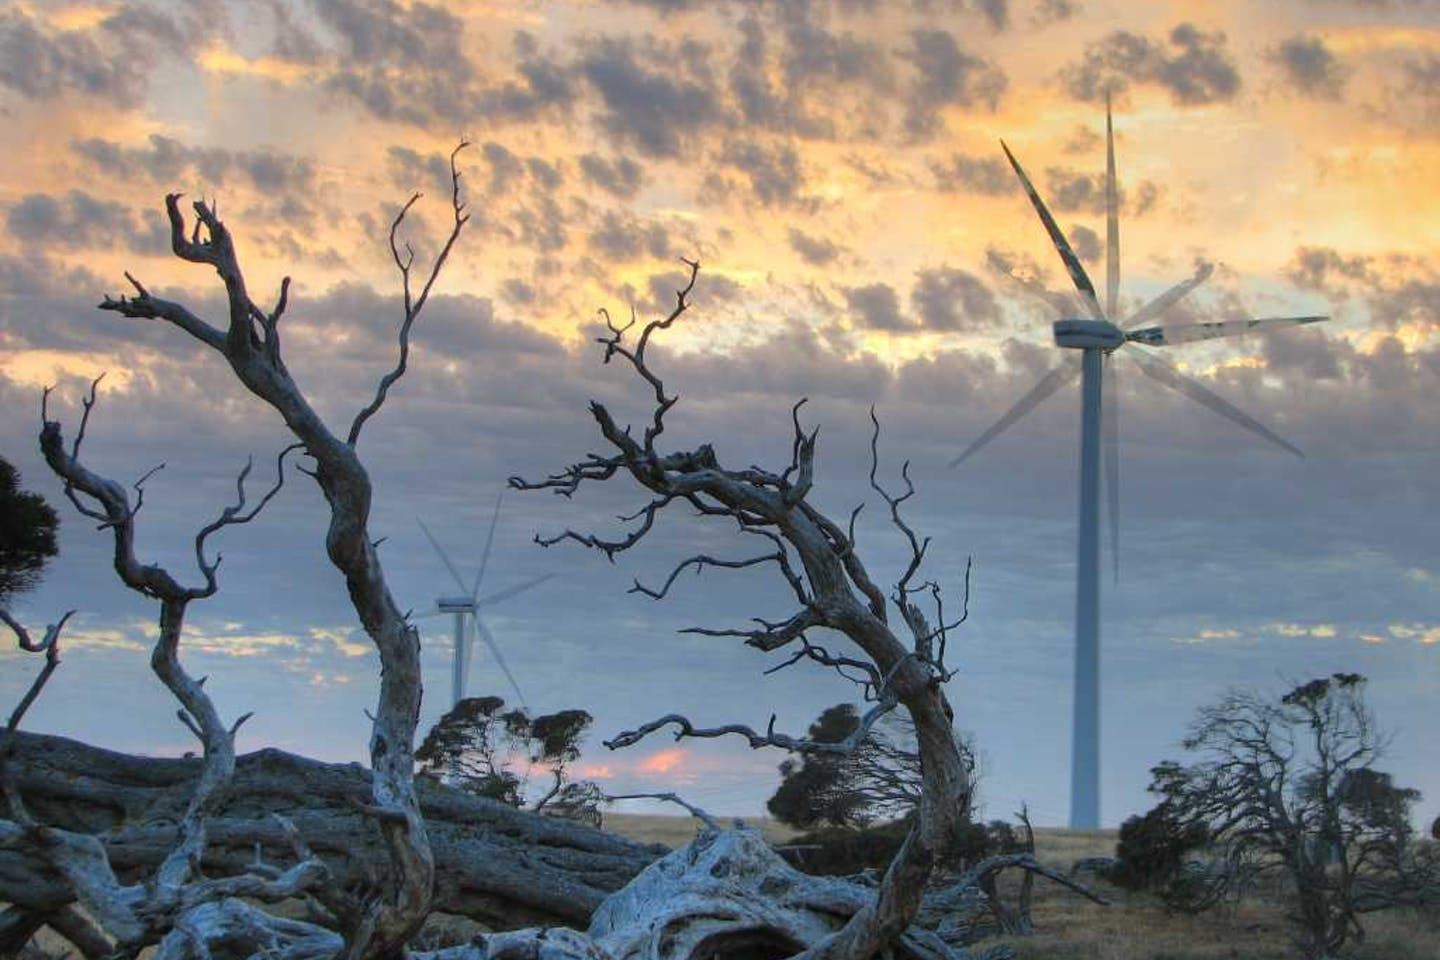 Millicent wind farm at sunrise in South Australia